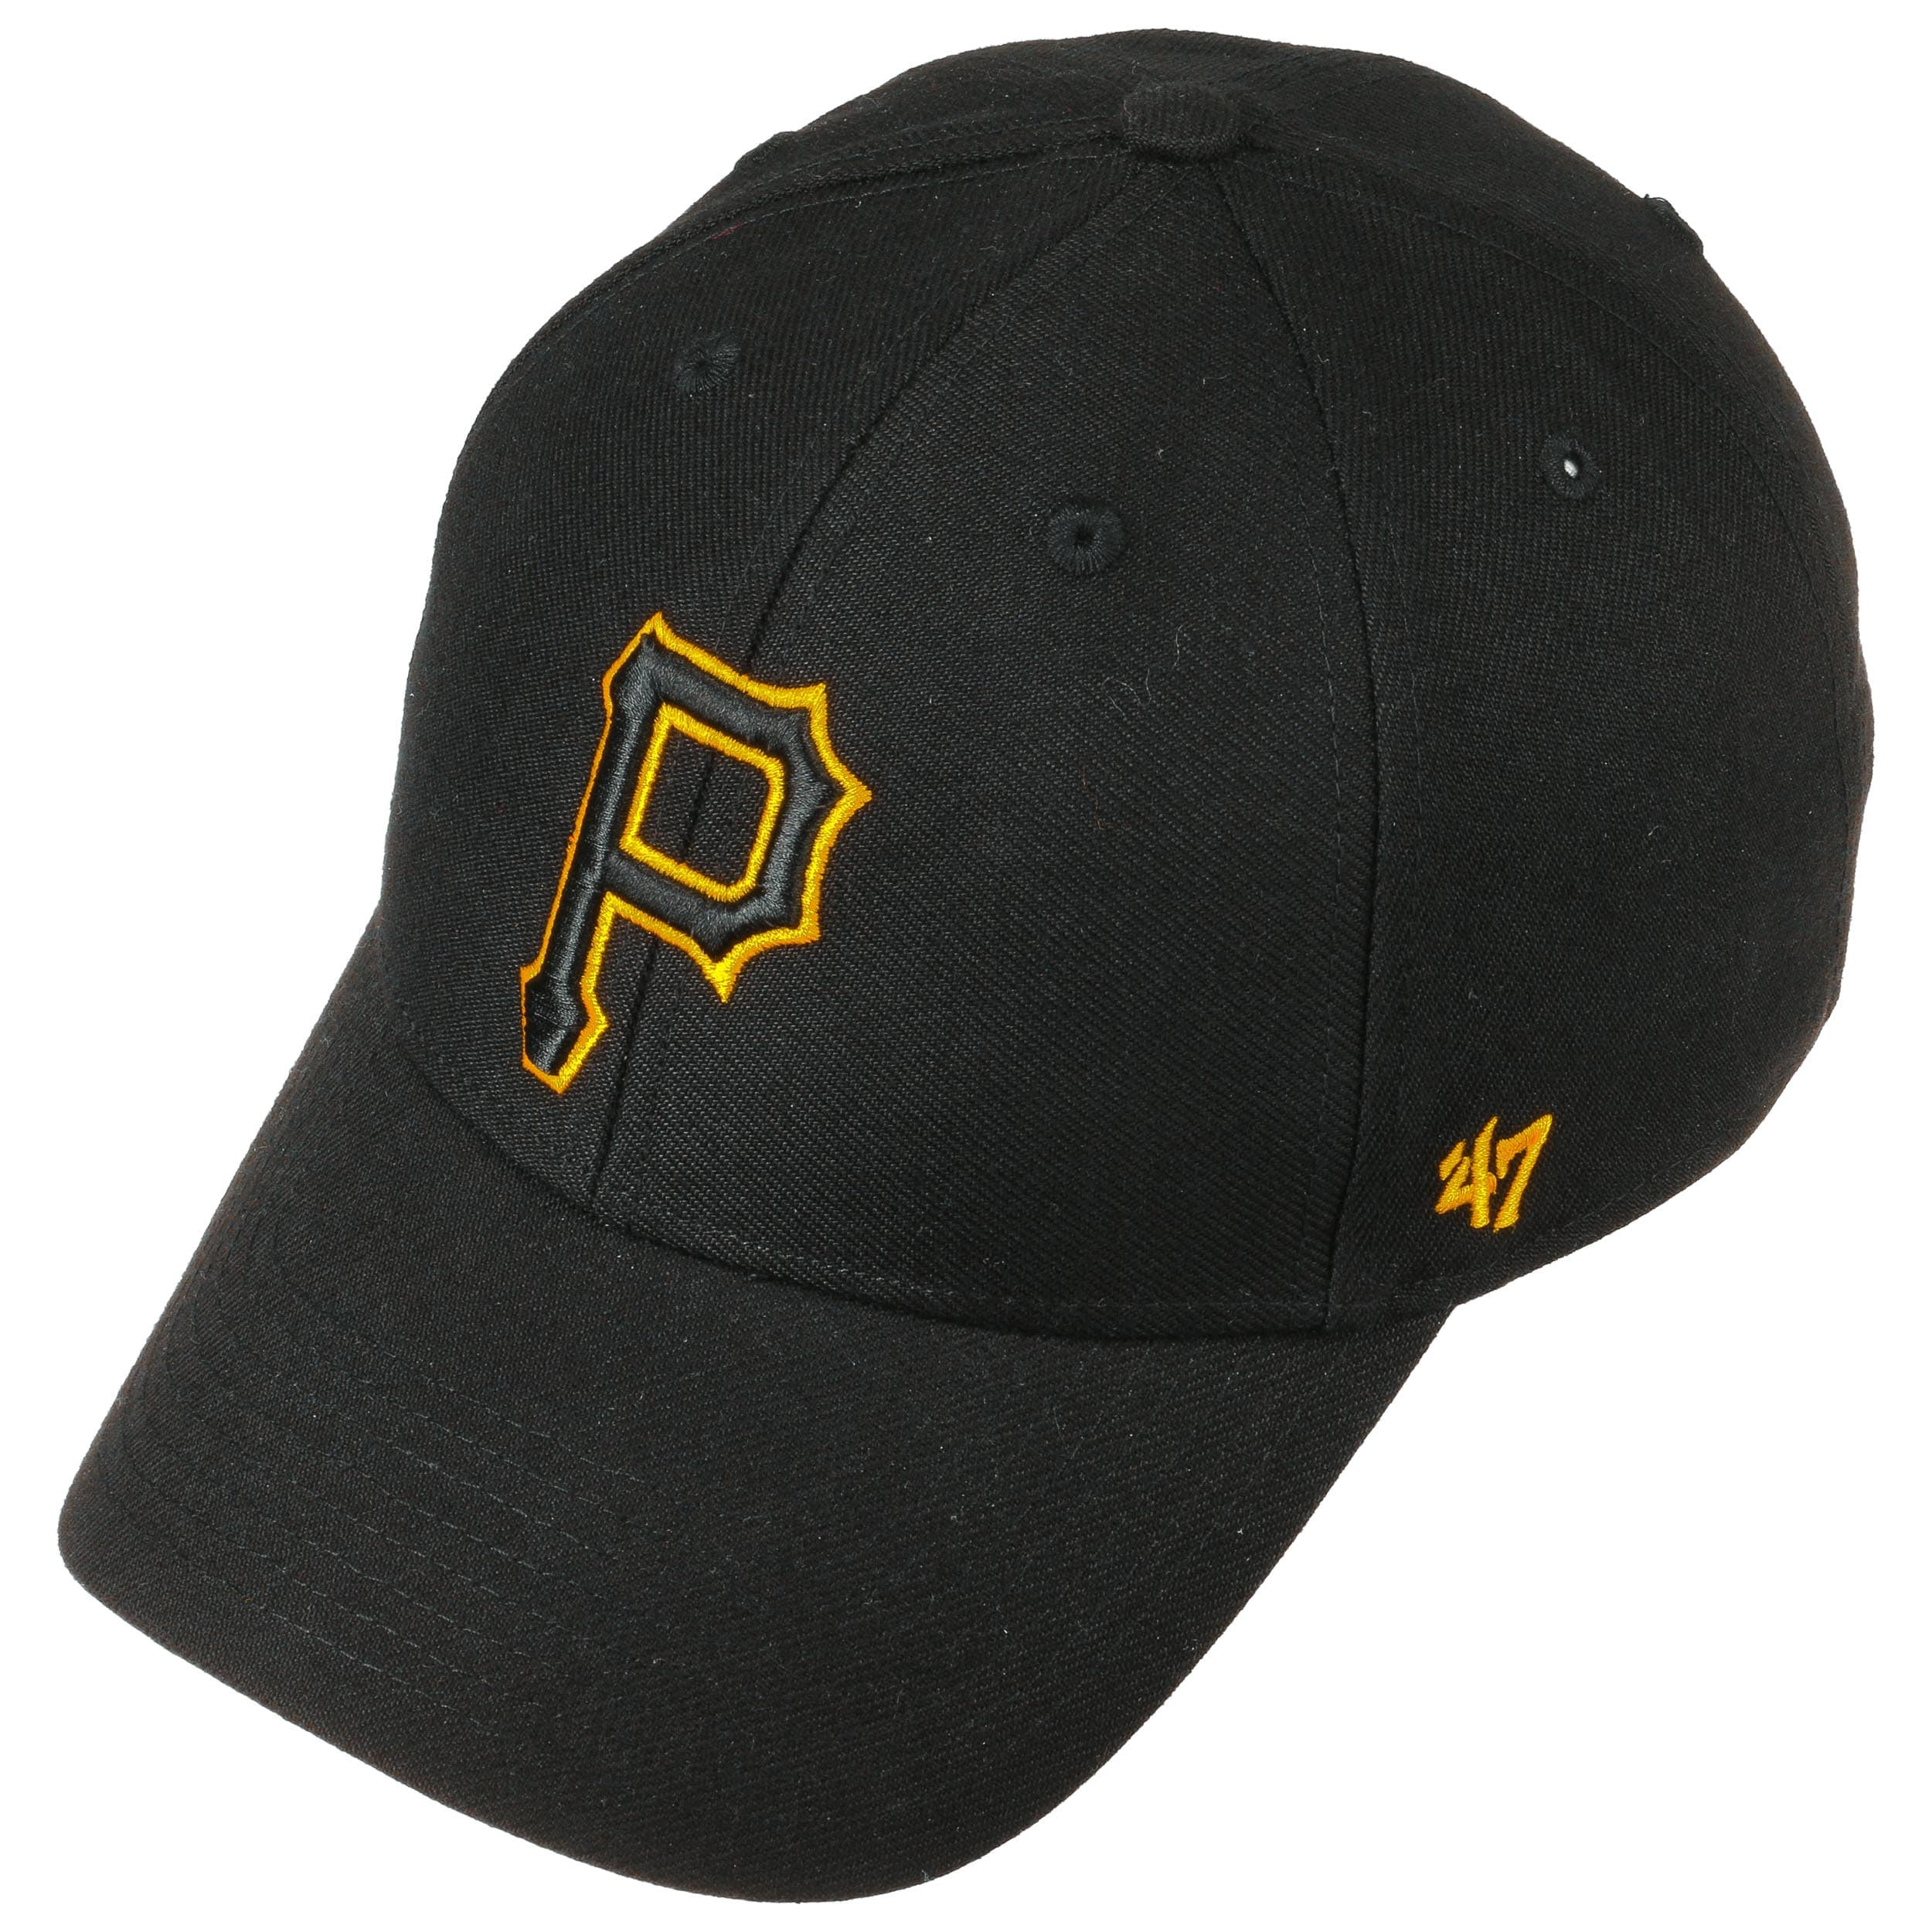 8a7459e848ae7 MVP Pirates Cap by 47 Brand - black-black 1 ...